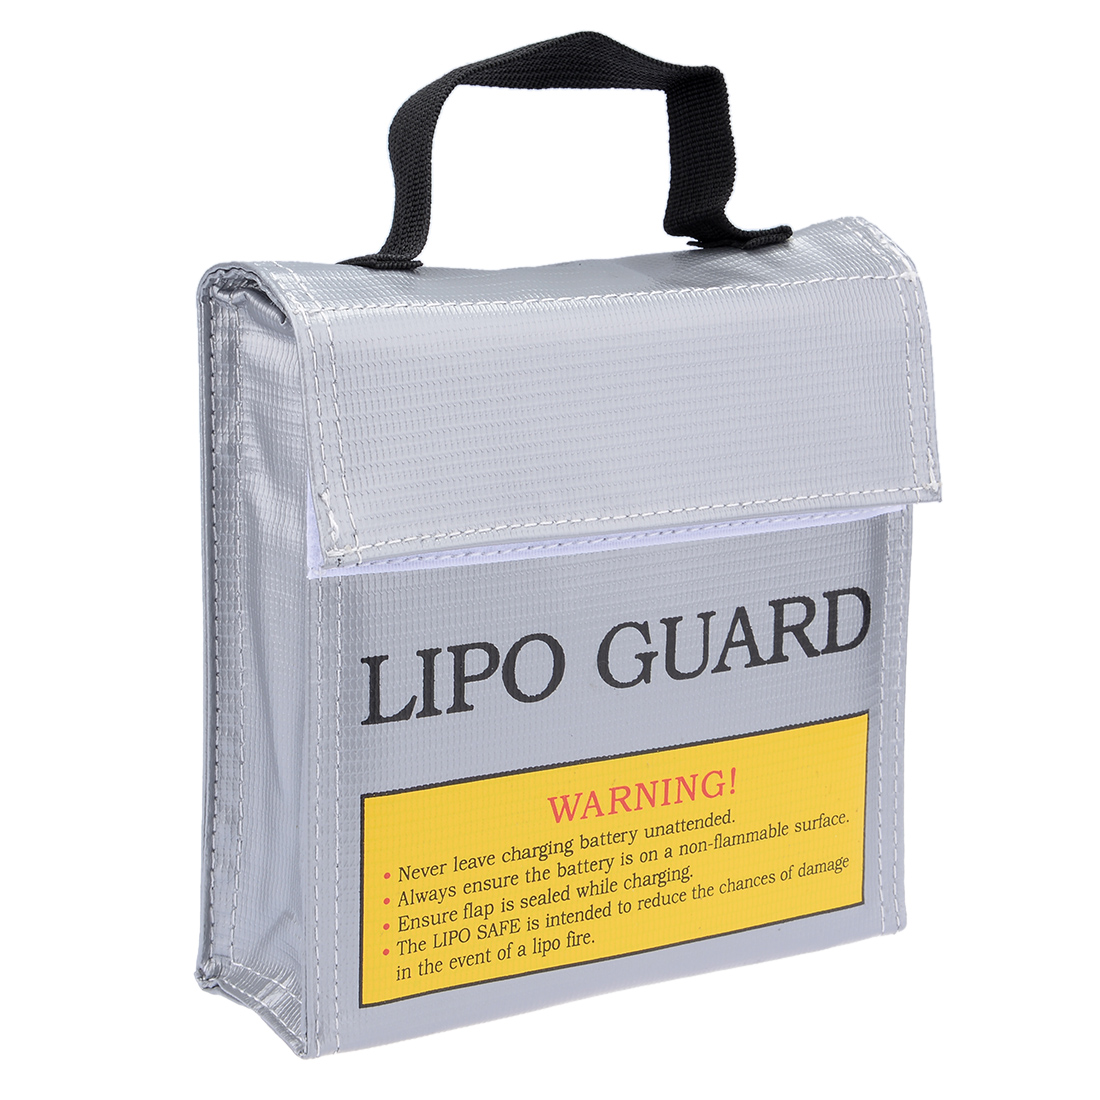 Lipo Battery Fireproof Explosionproof Bag Storage Guard Safe Charging Holder 155mm x 50mm x 155mm